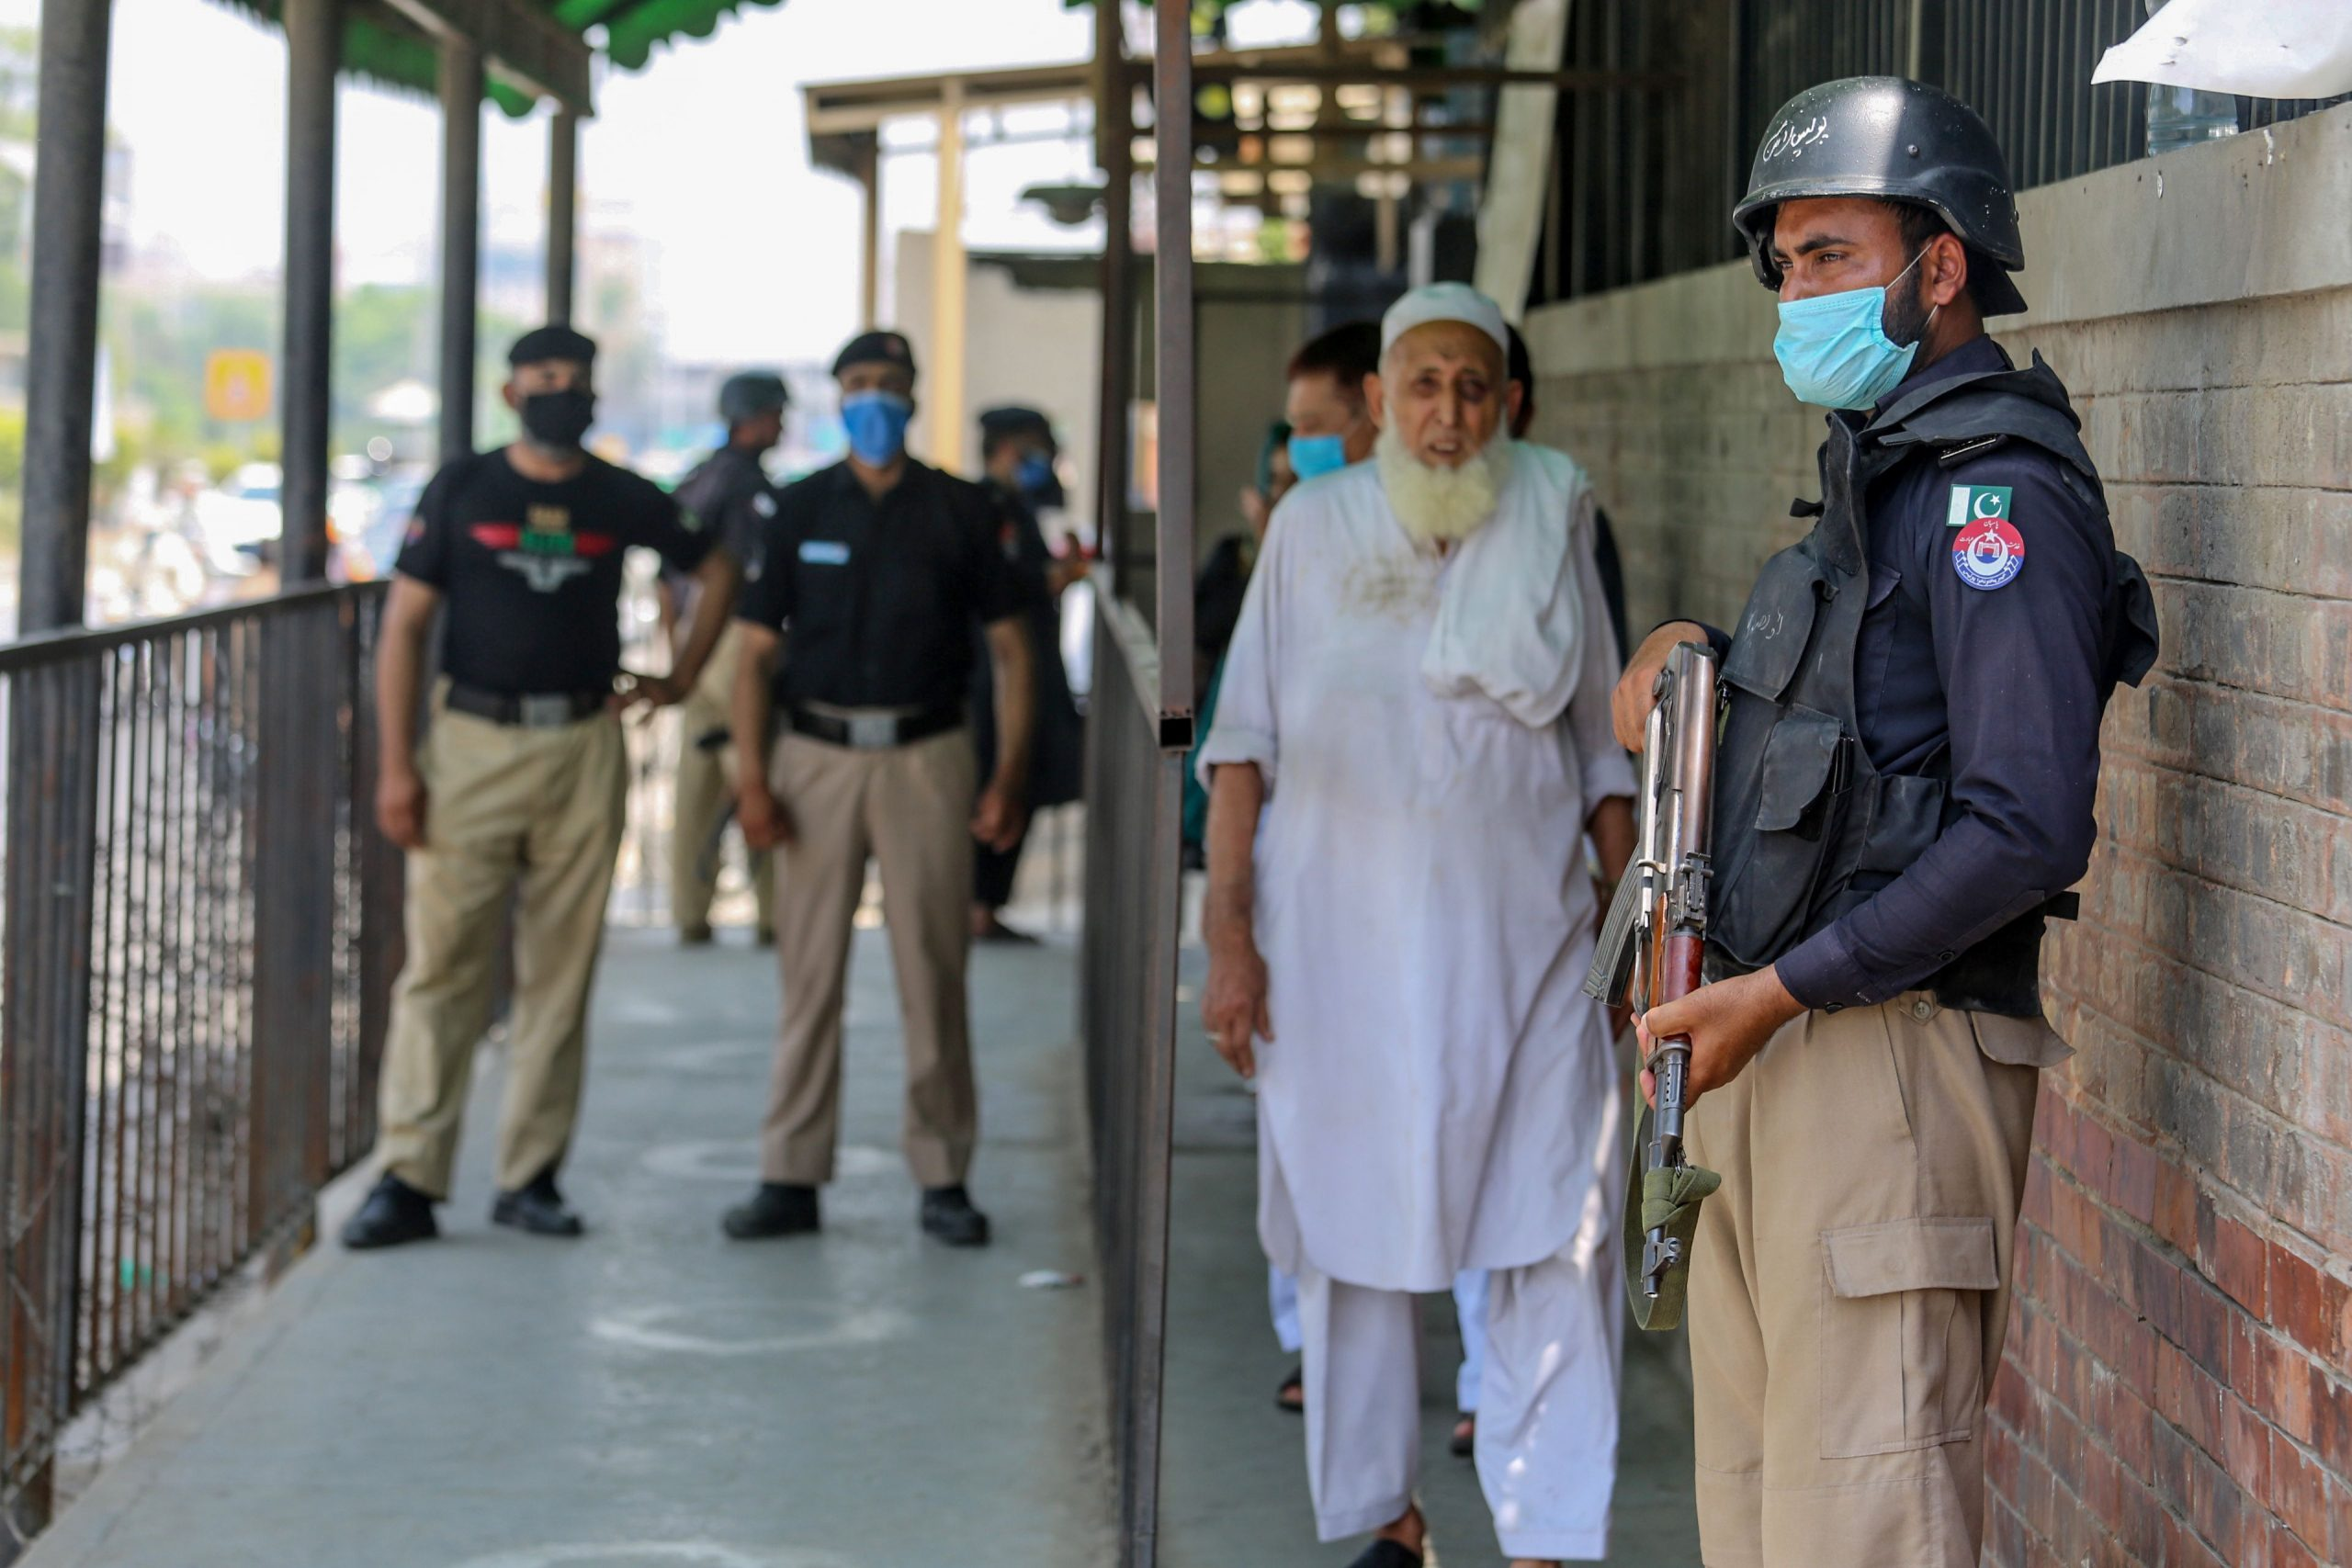 Security personnel (L and R) stand guard outside the district court building following the killing of a man allegedly accused of blasphemy in Peshawar on July 29, 2020. (Photo by -/AFP via Getty Images)